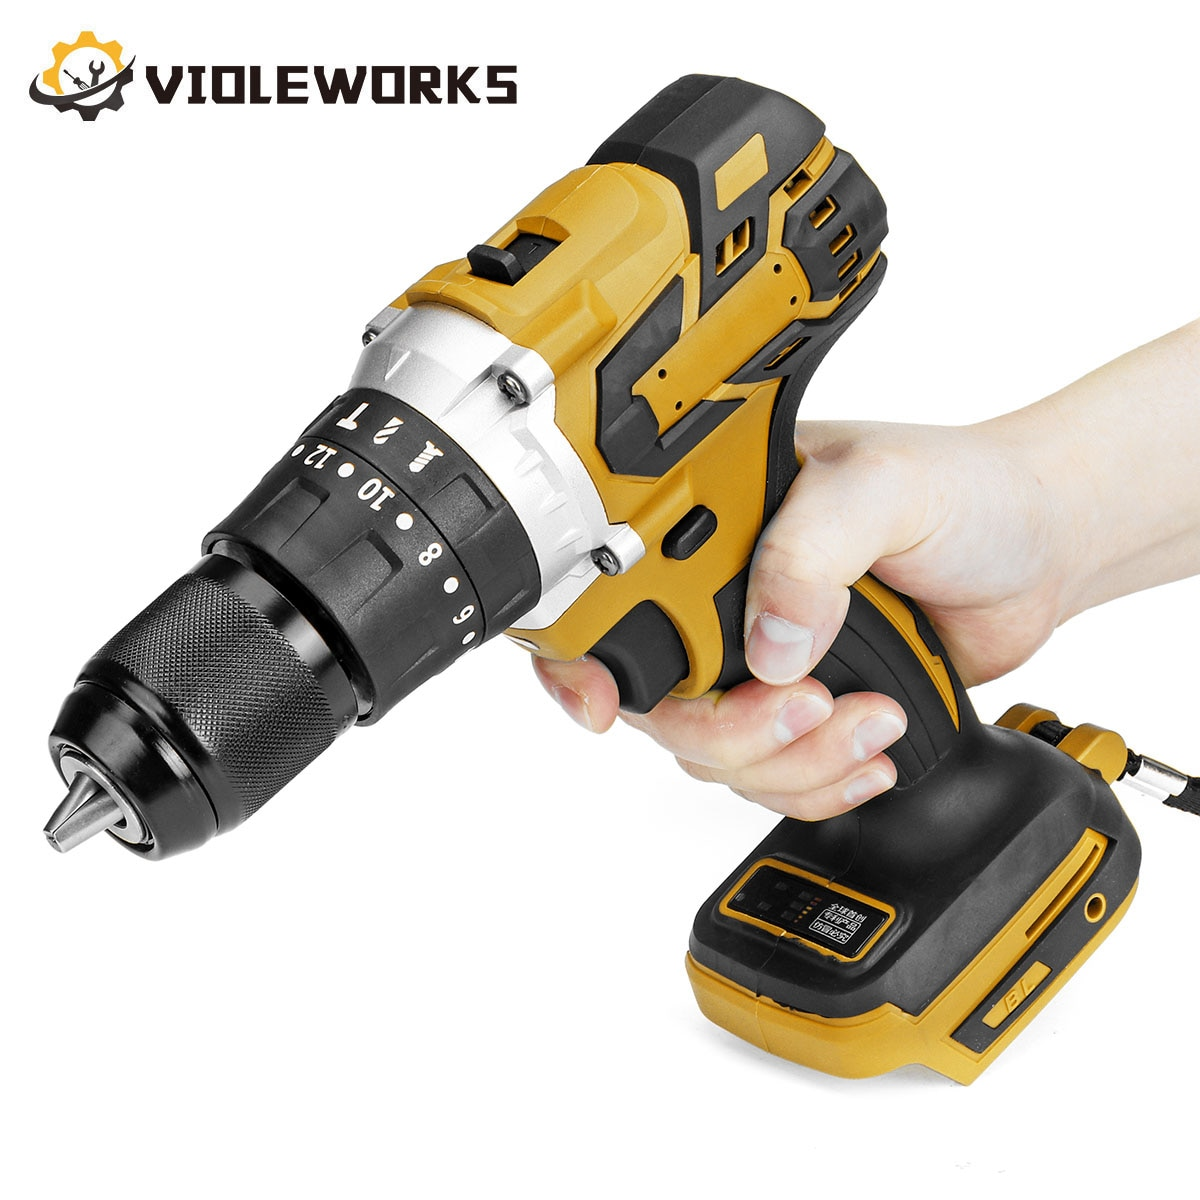 1PC 3 In 1 Brushless Electric Screwdriver Drill 20+3 Torque 13mm Cordless Impact Drill Hammer for Makita 18V Battery 3 in 1 13mm brushless electric hammer drill electric screwdriver 20 3 torque cordless impact drill for makita 18v battery